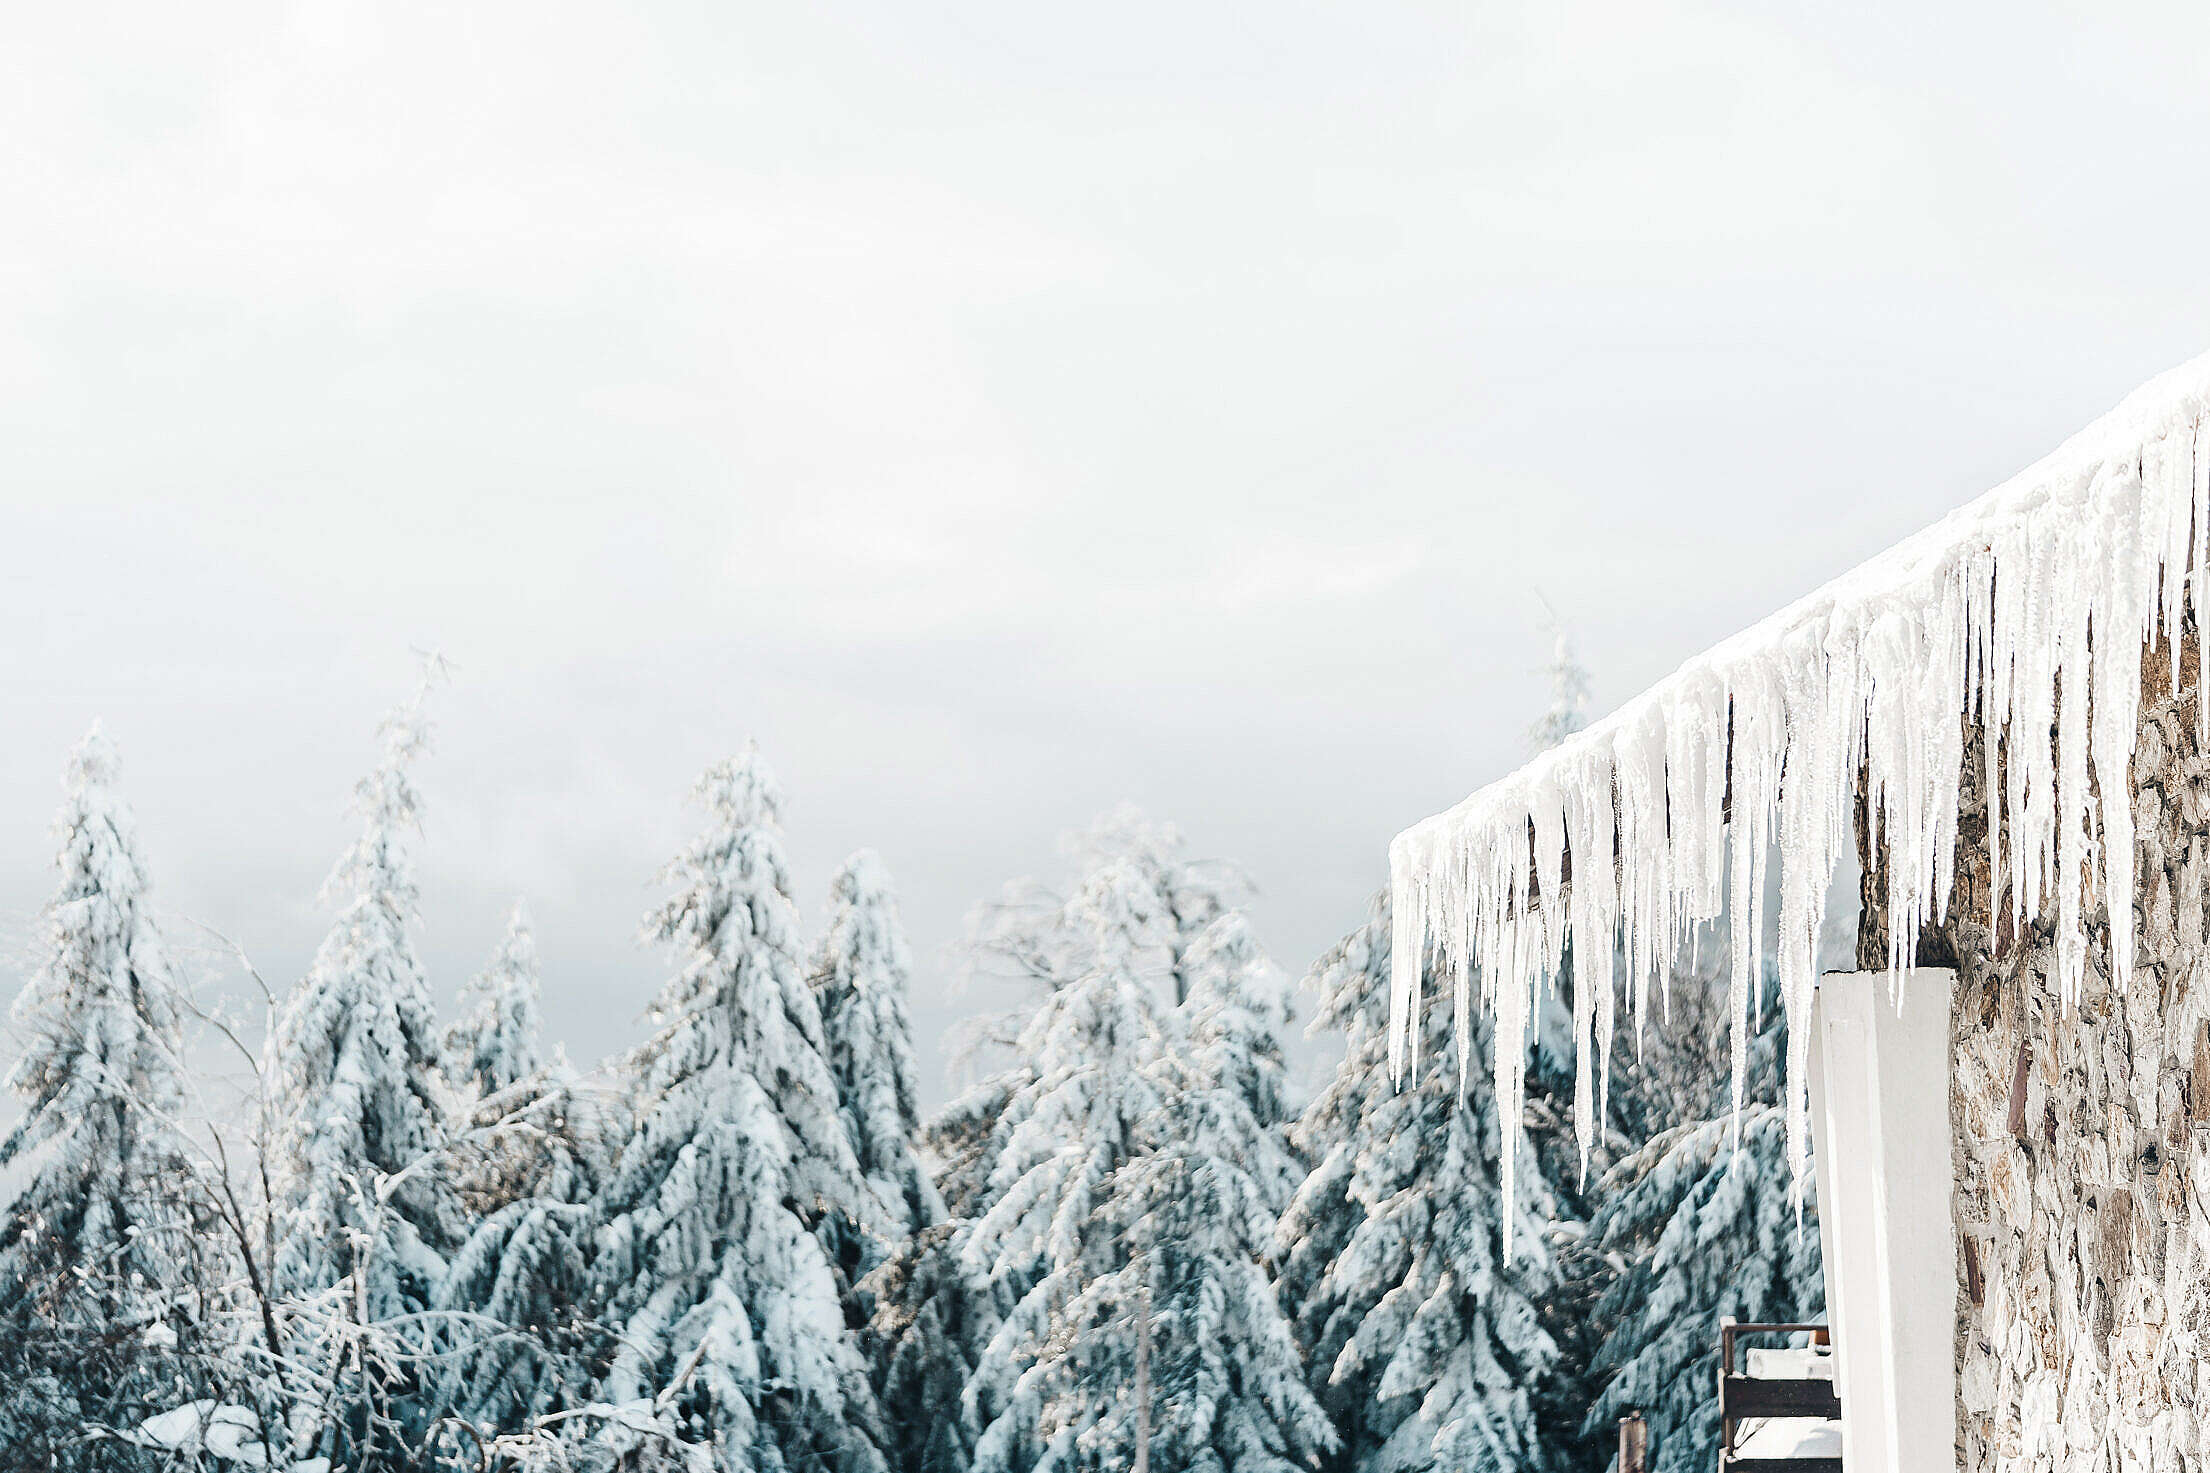 Icicles and White Snowy Forest Free Stock Photo